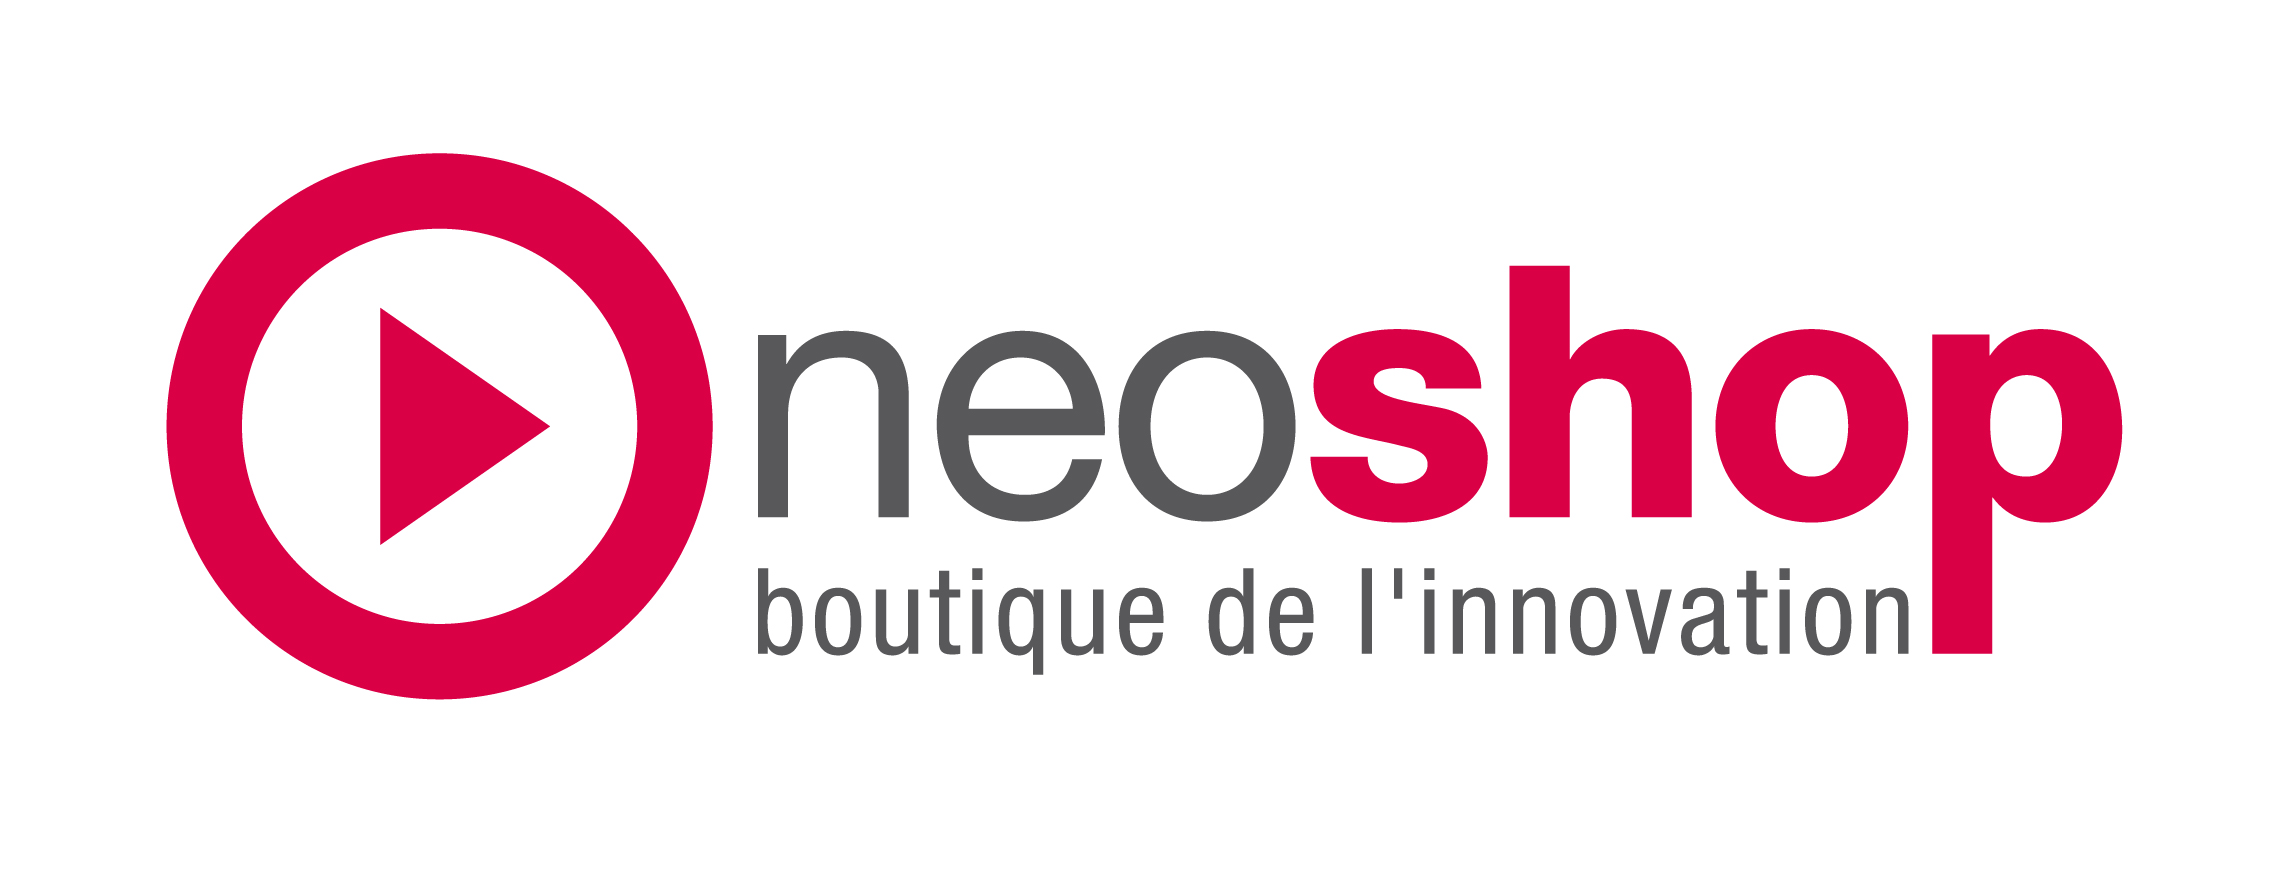 logo-neoshop-rectangle-fond-blanc-boutique-de-l-innovation-hd-jpeg_1394207886456-jpg